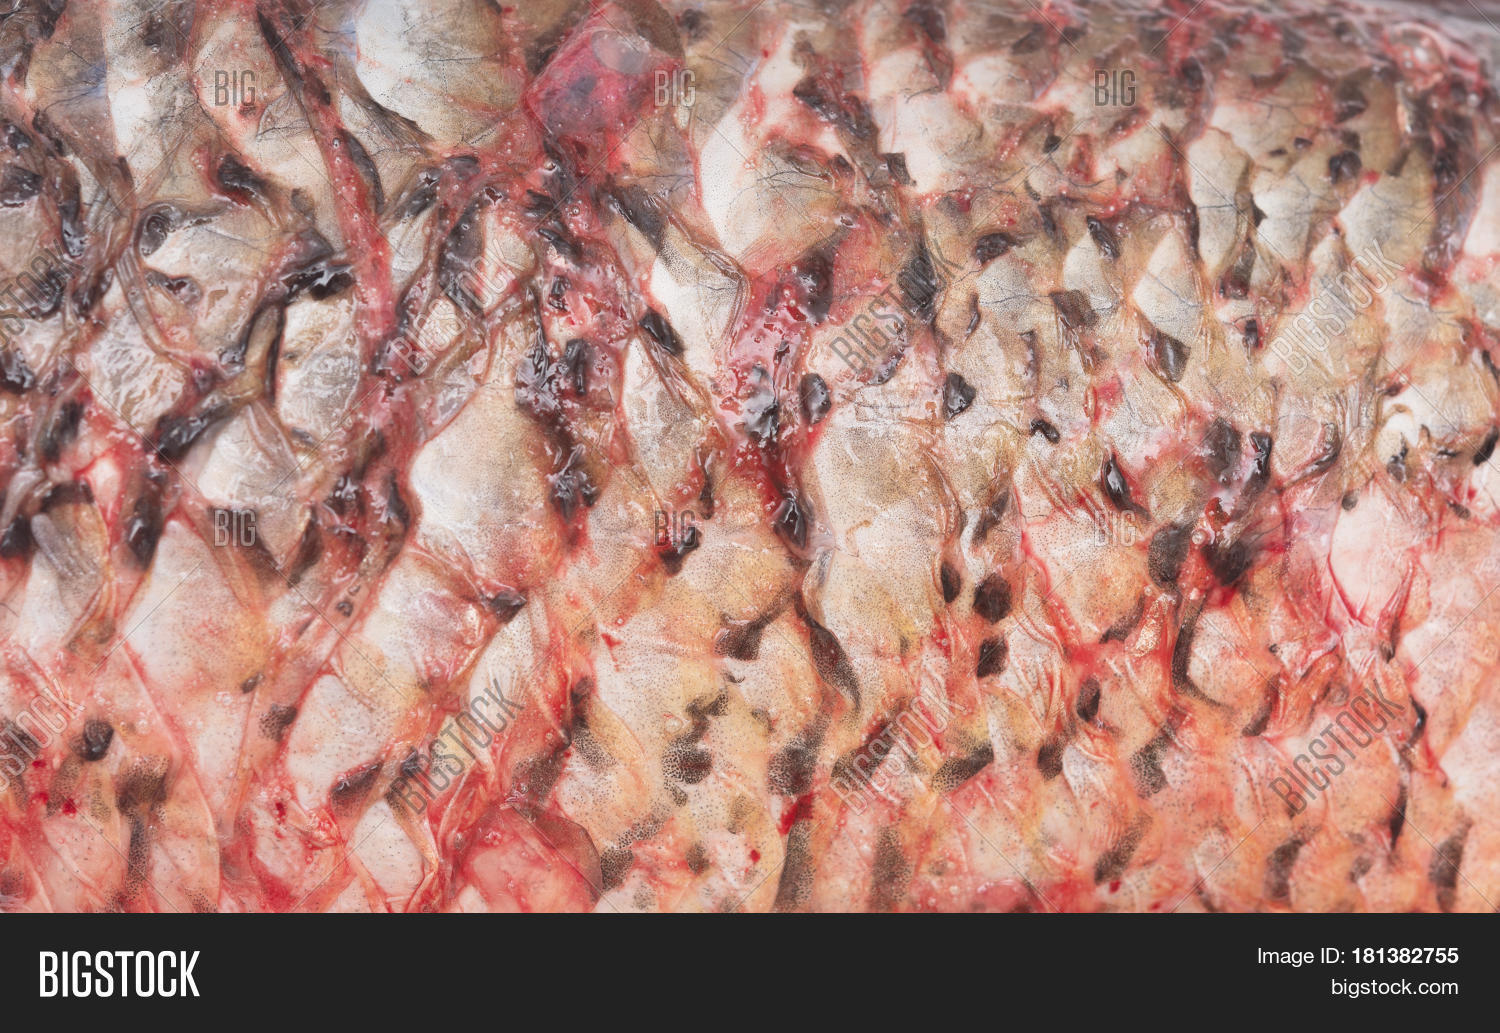 Image fish skin without scale image photo bigstock for Fish without scales